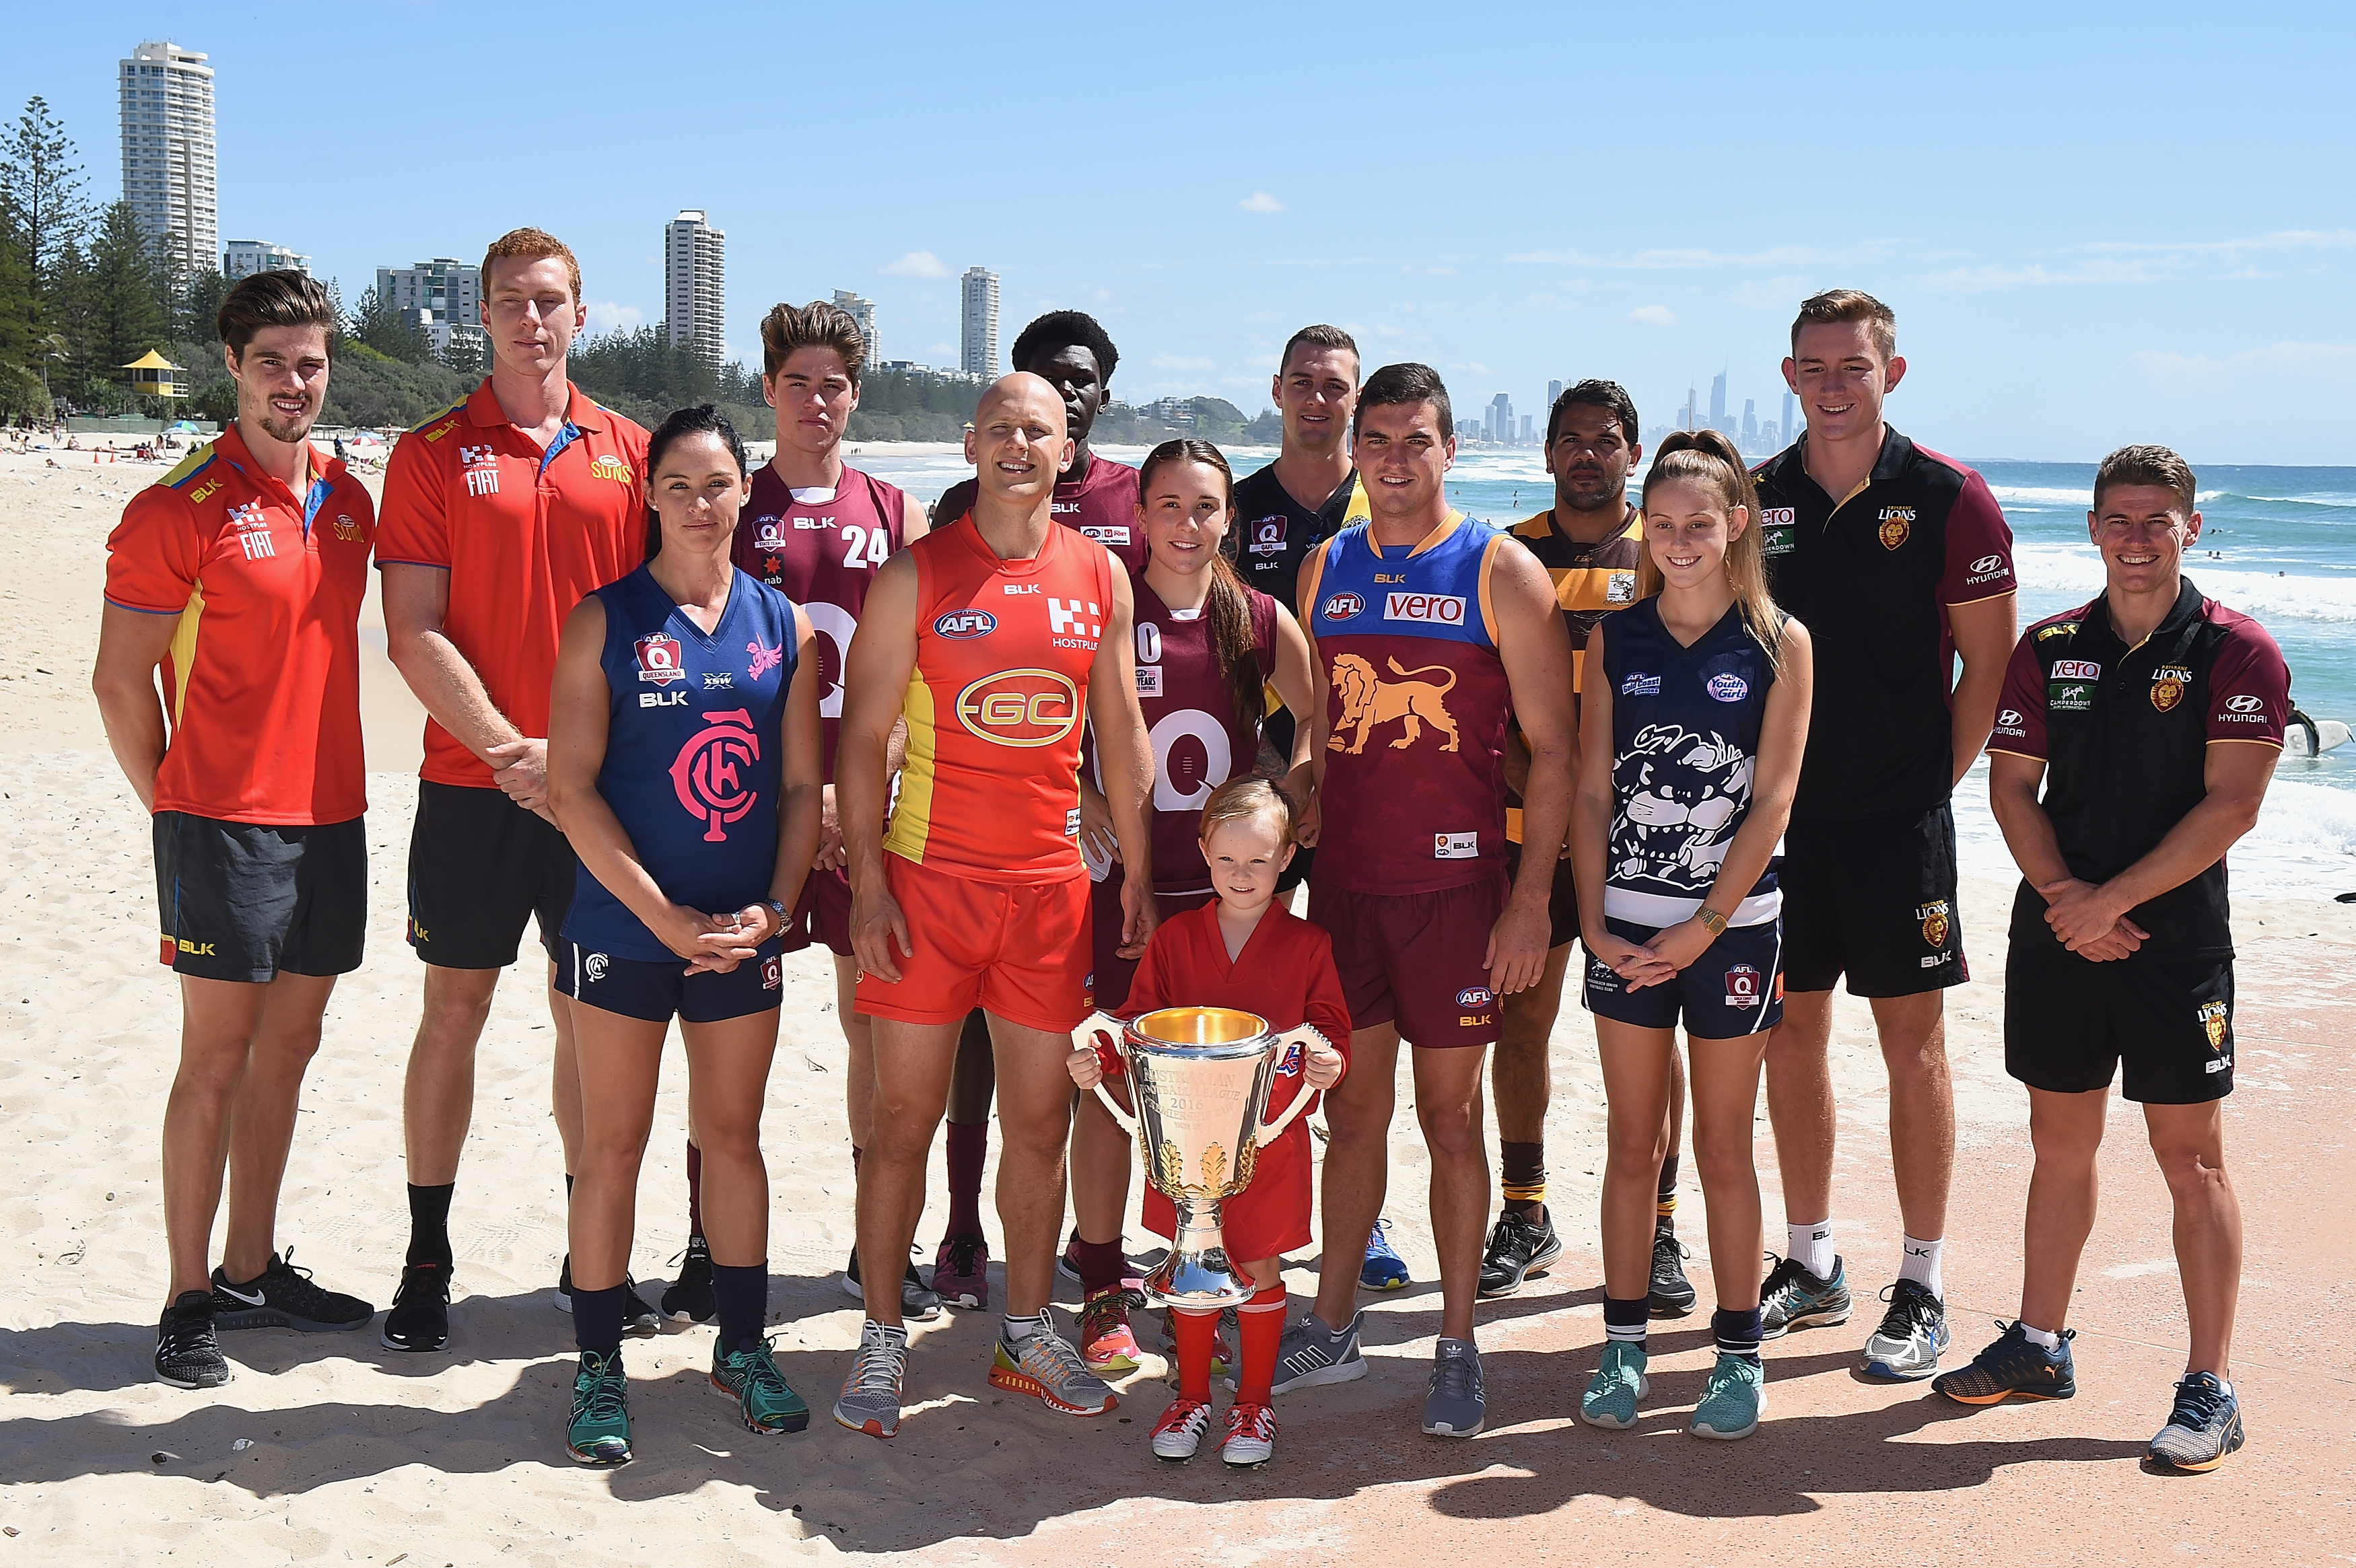 BURLEIGH HEADS, AUSTRALIA - MARCH 22: Gary Ablett and Tom Rockliff pose for a photo during the a press call to celebrates Queensland's 150 year anniversary of Australian Rules Football at Oskars on Burleigh in Burleigh Heads, Australia on March 22, 2016. (Photo by Matt Roberts/AFL Media)